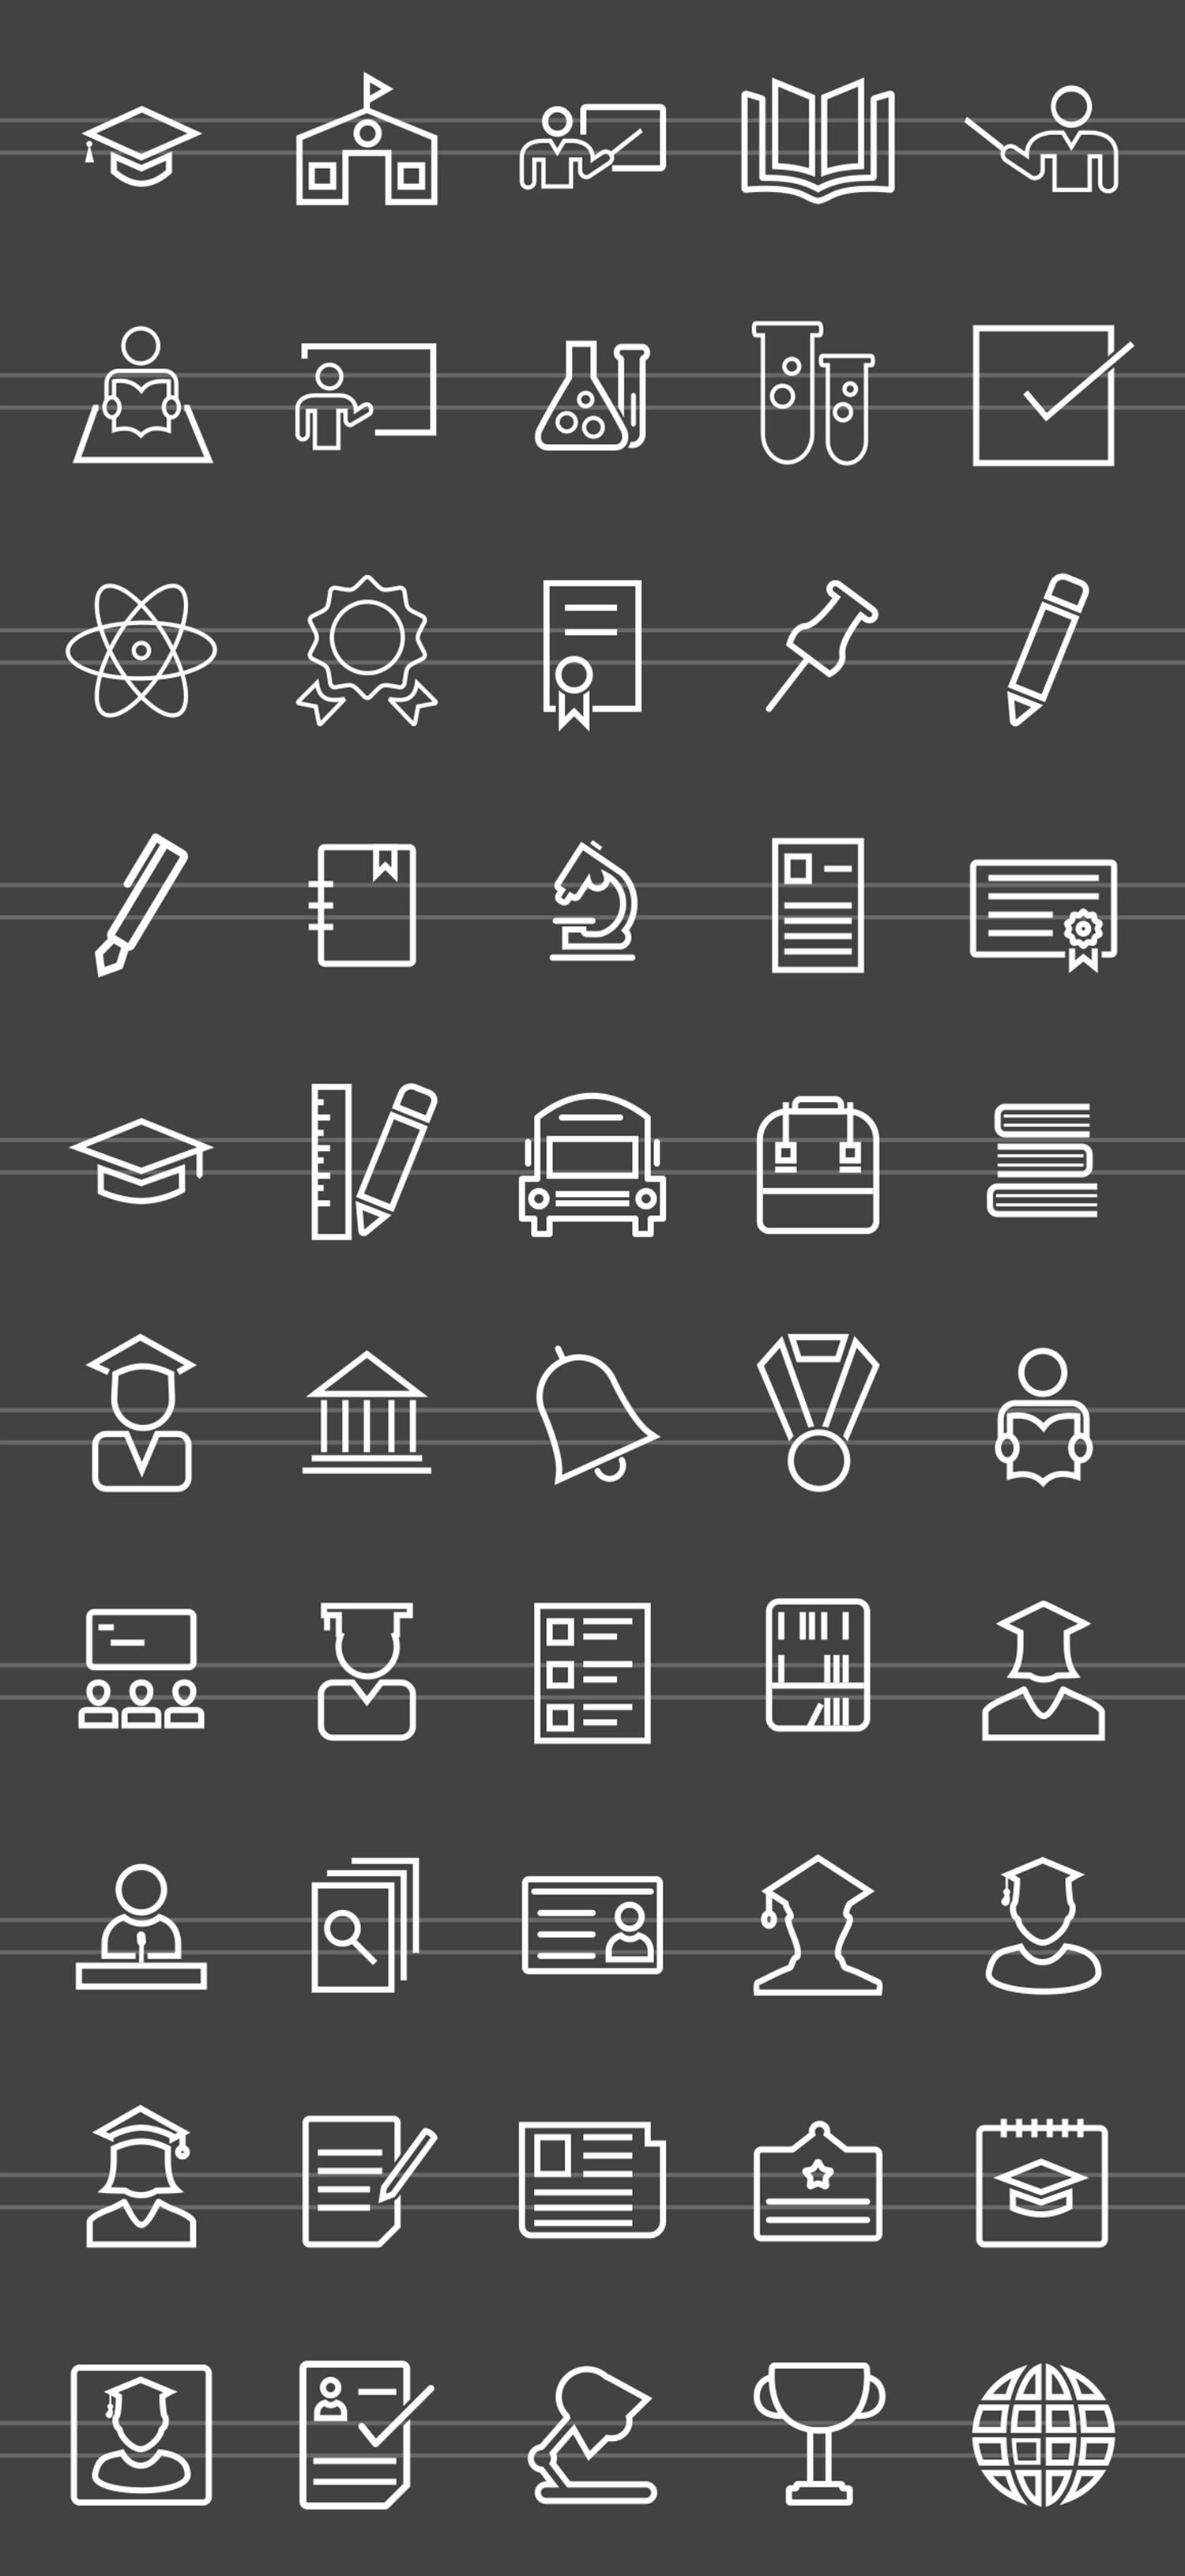 50 Academics Line Inverted Icons example image 2